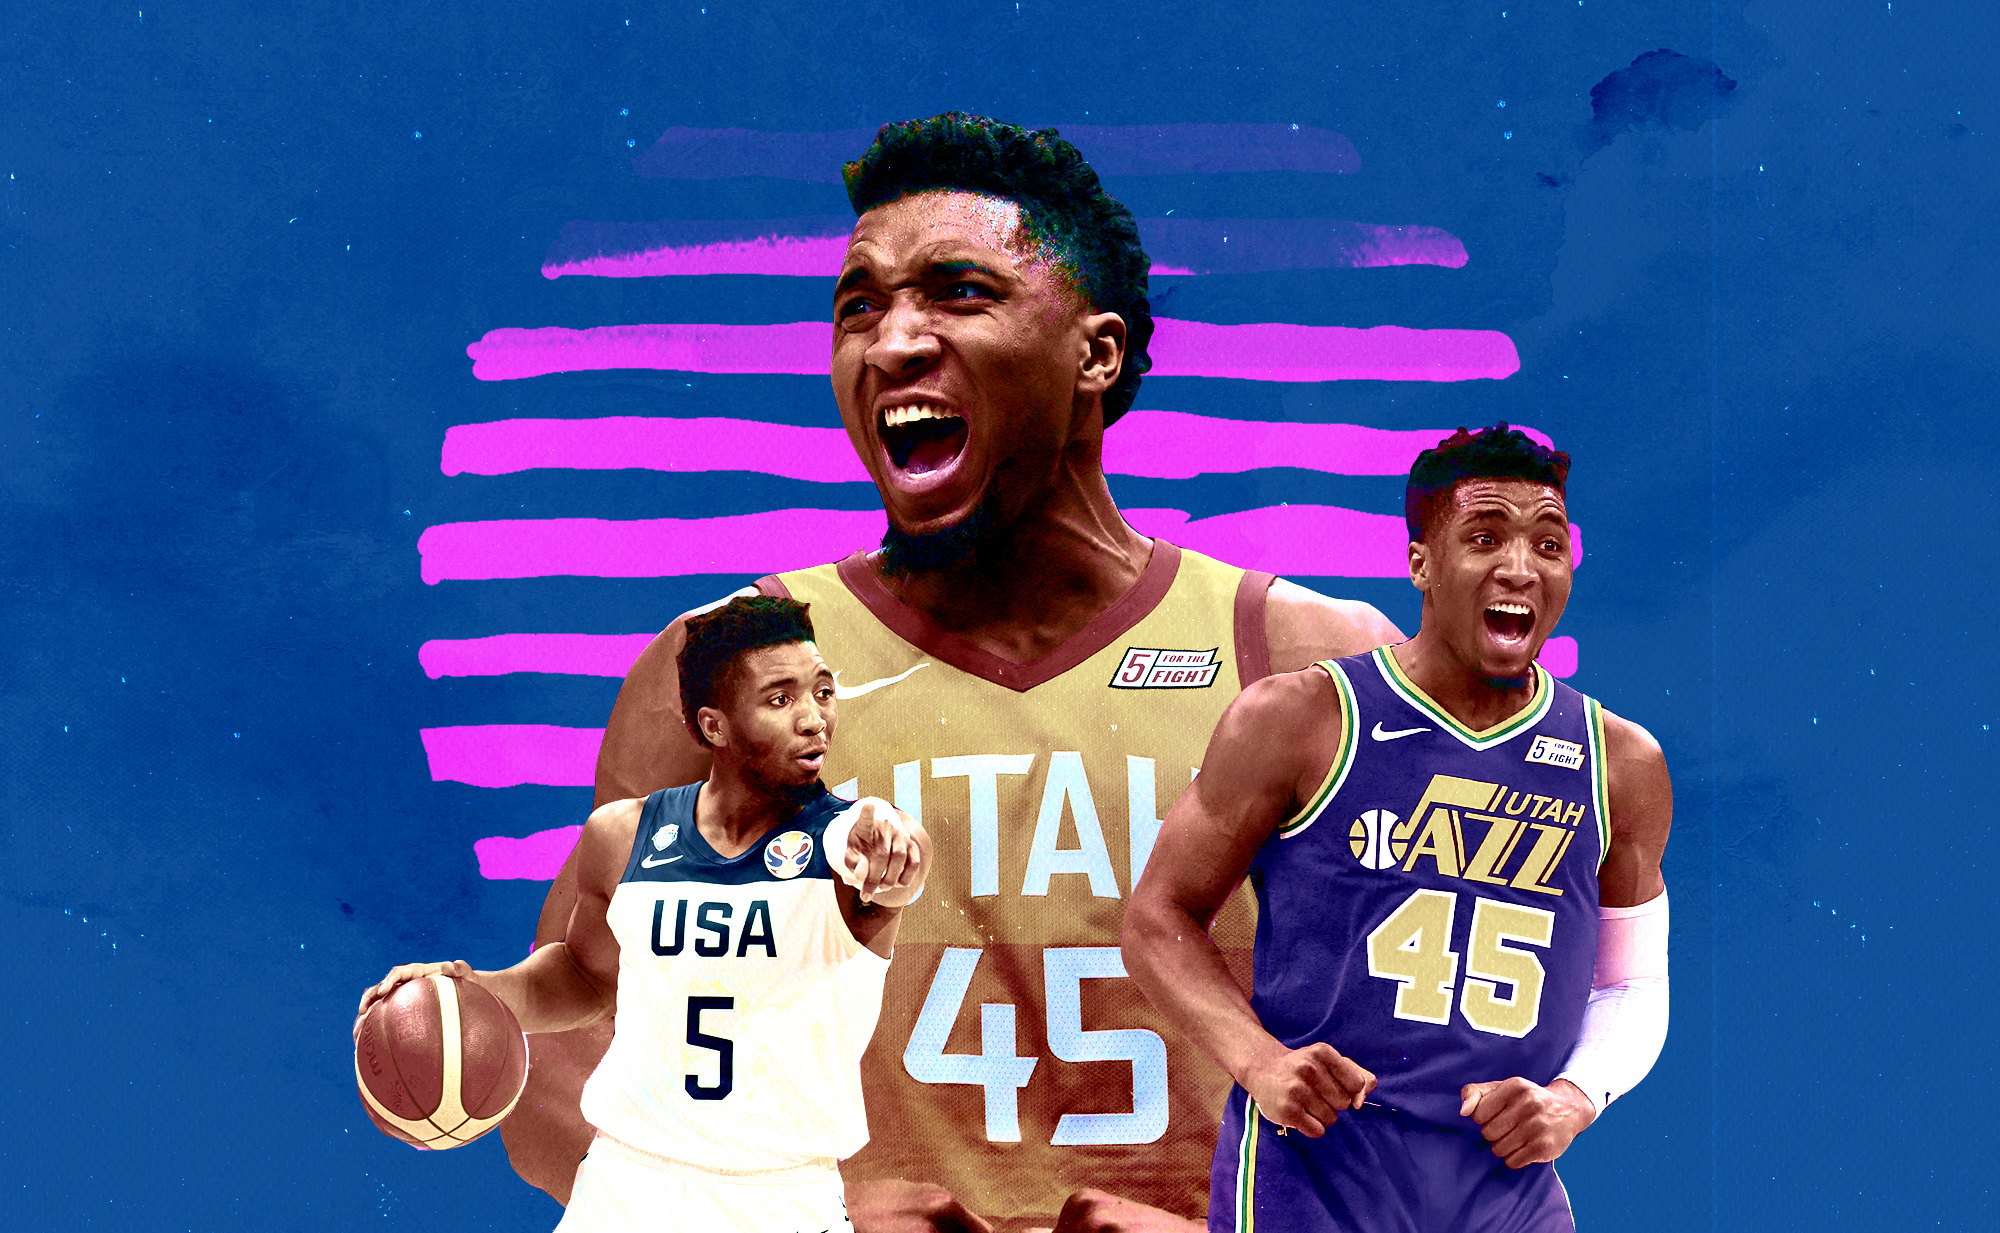 A collage of Donovan Mitchell photos from the Utah Jazz and Team USA superimposed over a backdrop.